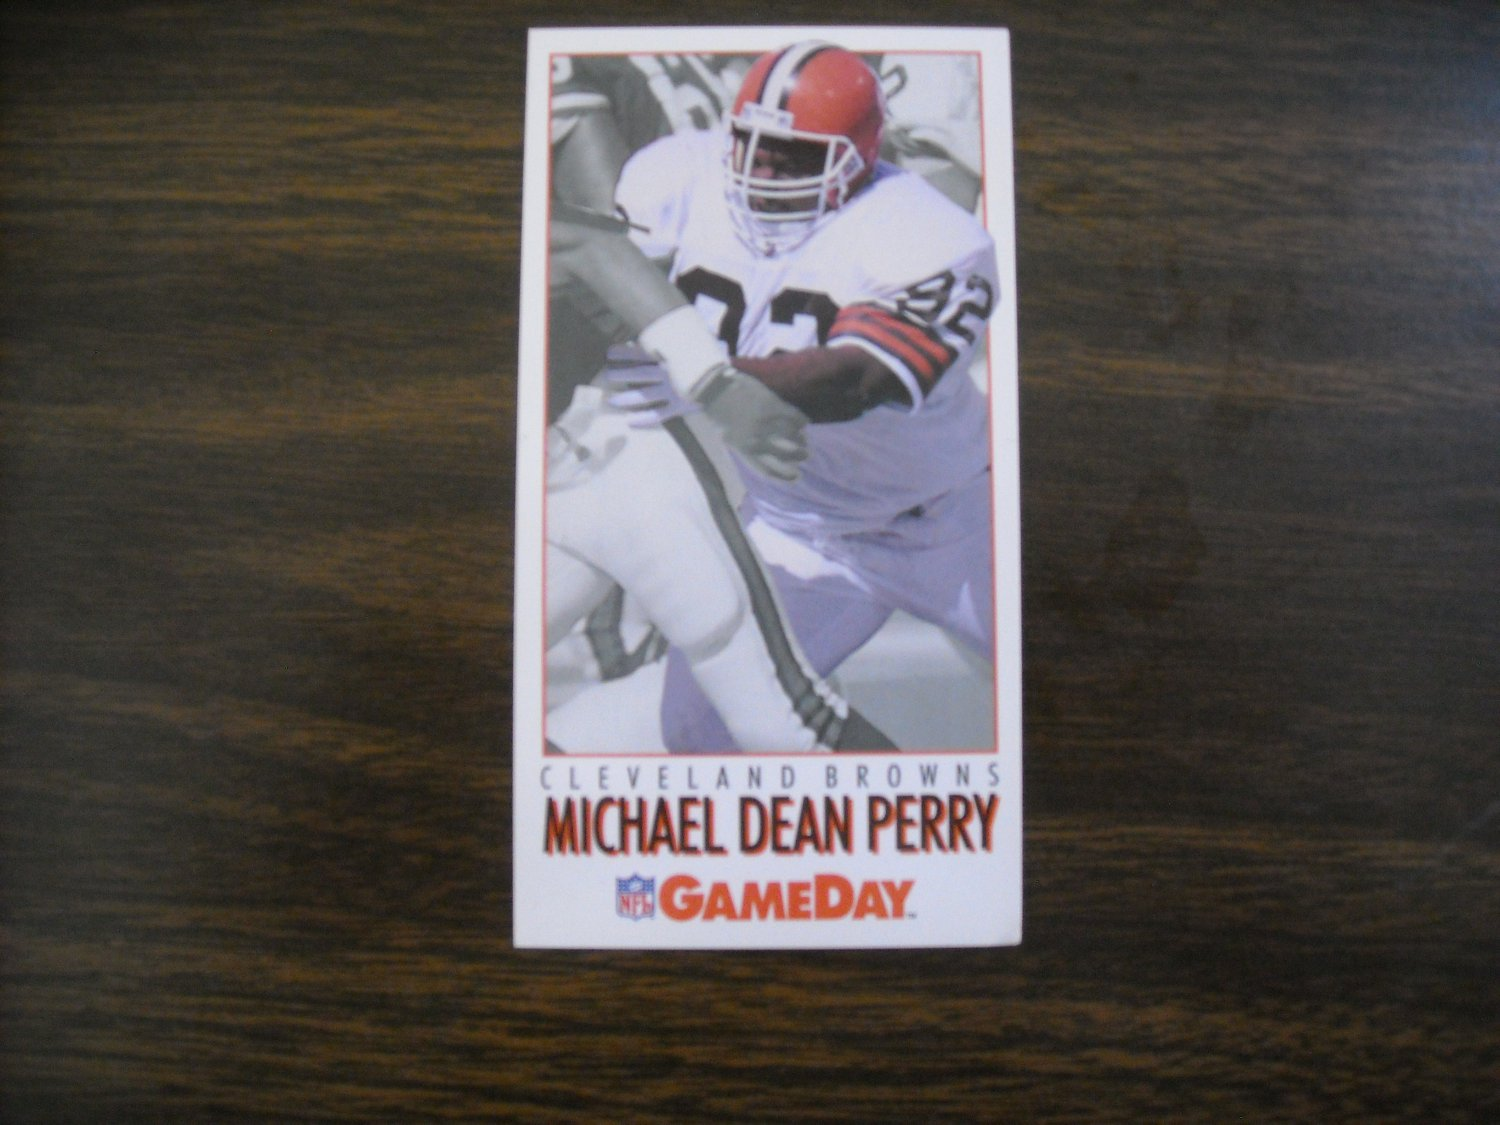 Michael Dean Perry Cleveland Browns Card No. 302 - Game Day 1992 National Football Card